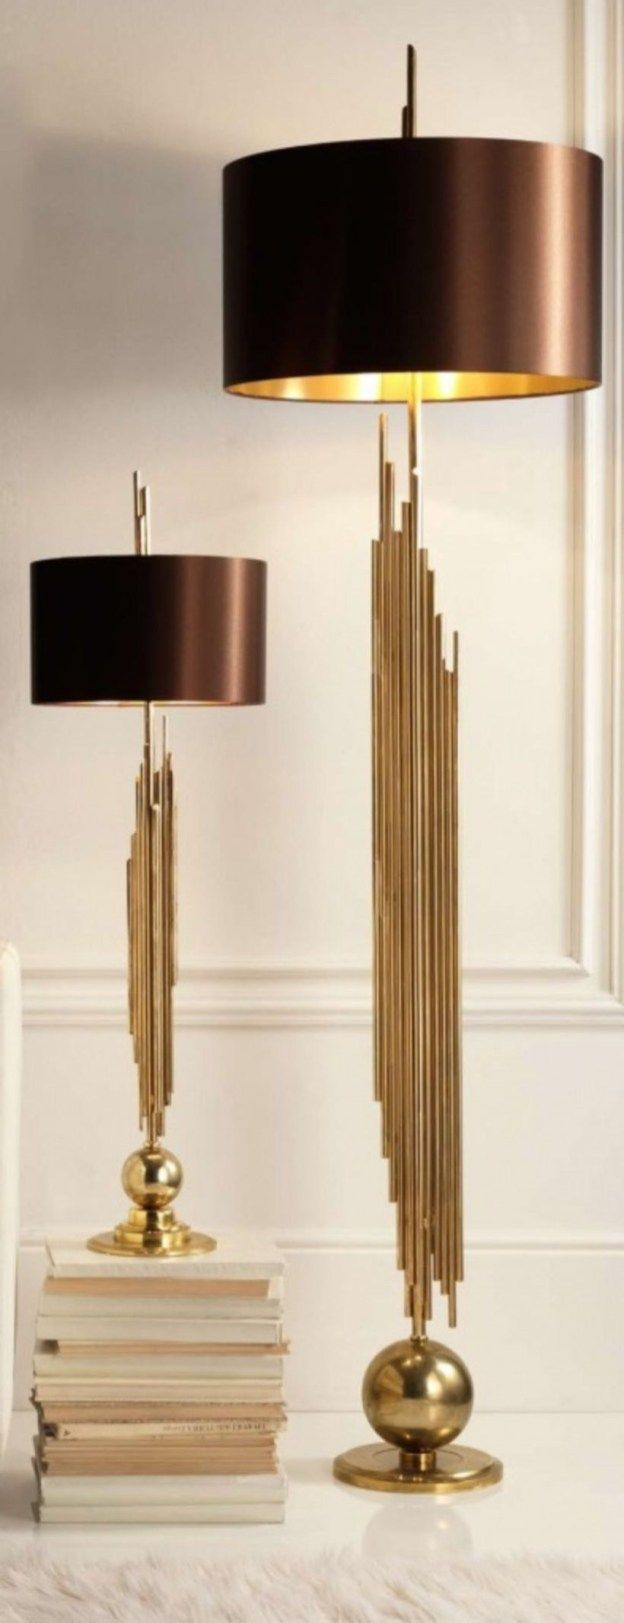 Modern floor lamp designs to makes your home get luxury (7